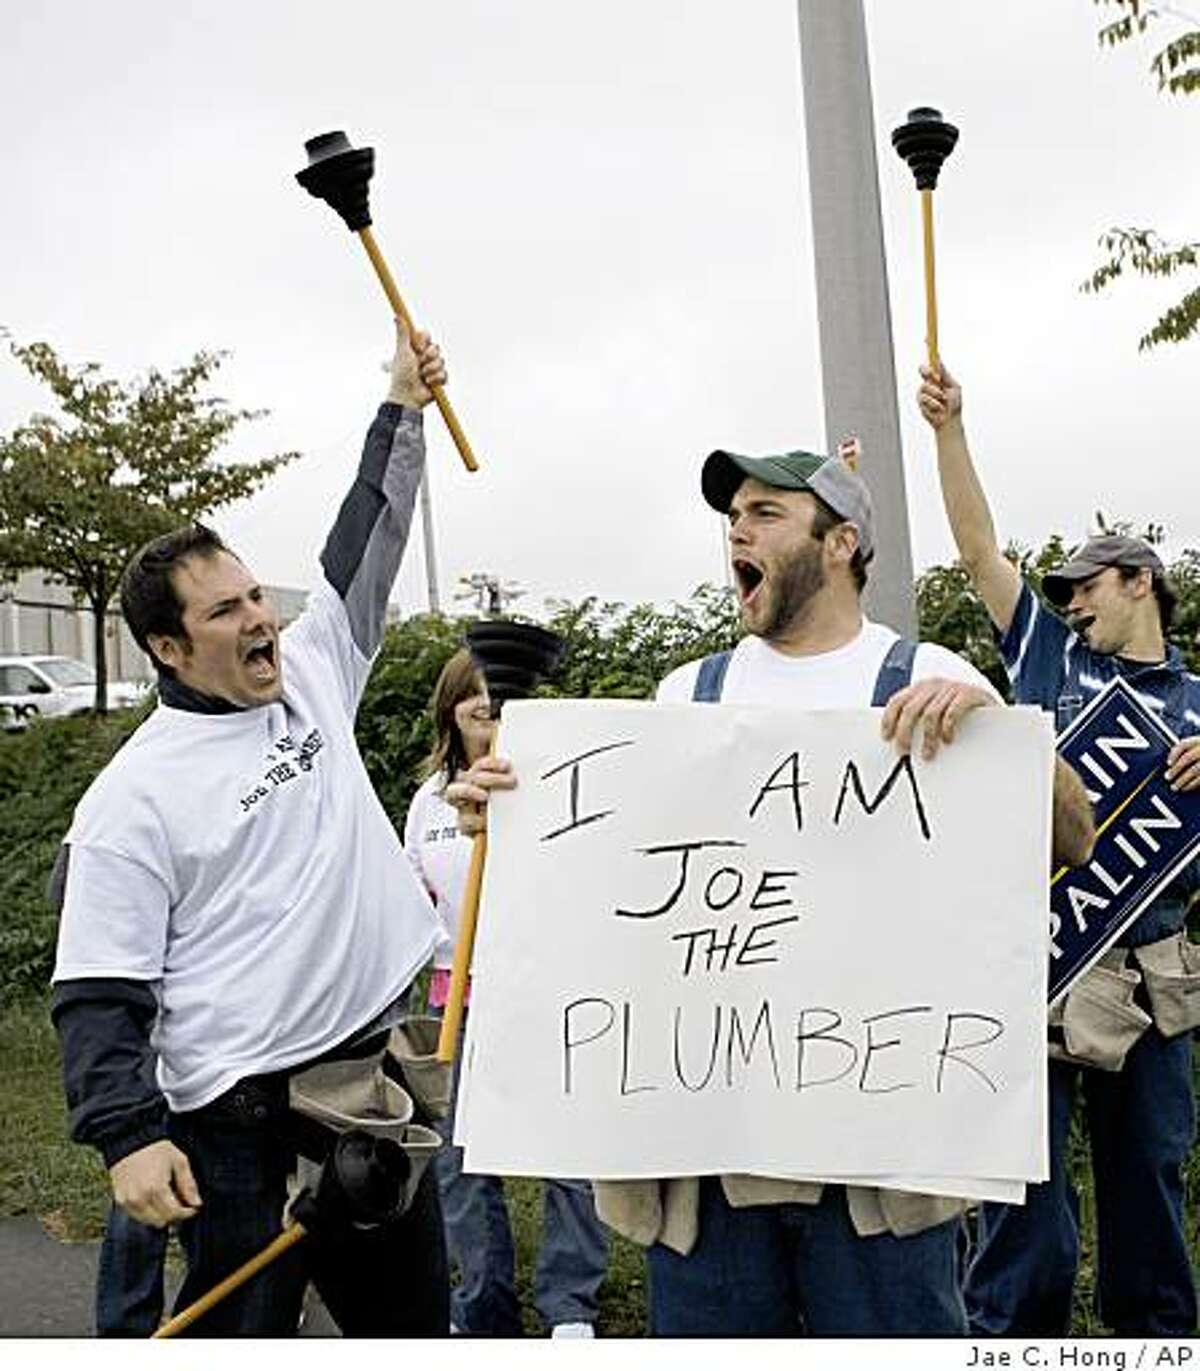 Supporters of Republican presidential candidate Sen. John McCain, R-Ariz., are dressed as Joe the Plumber as they stand outside the Roanoke Civic Center where a rally for Democratic presidential candidate, Sen. Barack Obama, D-Ill., takes place in Roanoke, Va., Friday, Oct. 17, 2008. (AP Photo/Jae C. Hong)